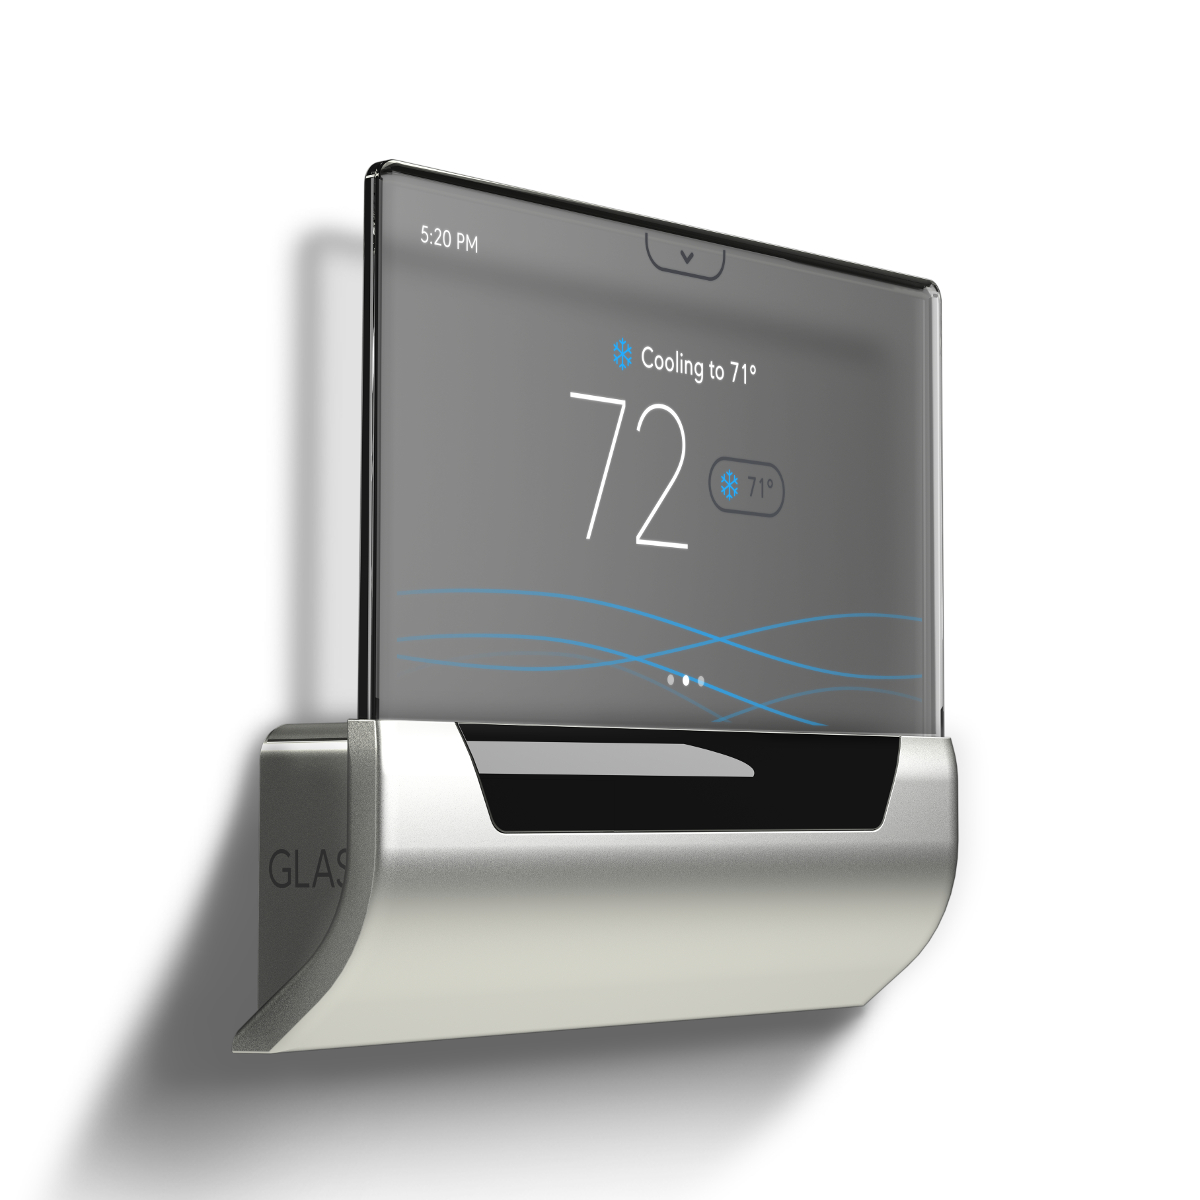 GLAS A Reinvented Thermostat By Johnson Controls & Microsoft